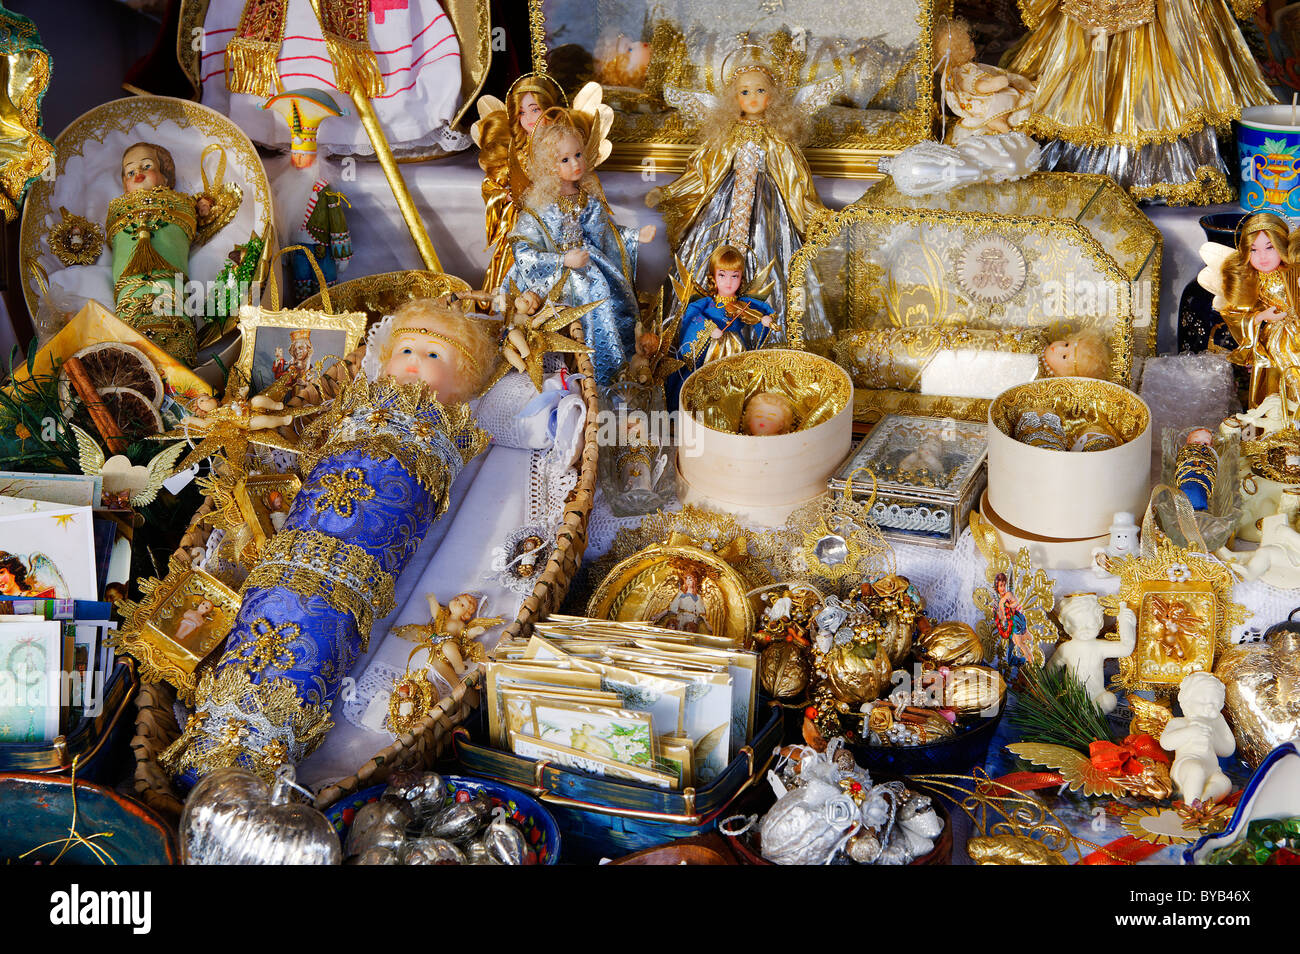 Religious handicraft by U Muster, Garching, christmas market, Kapellplatz, Altoetting, Upper Bavaria, Germany, Europe - Stock Image